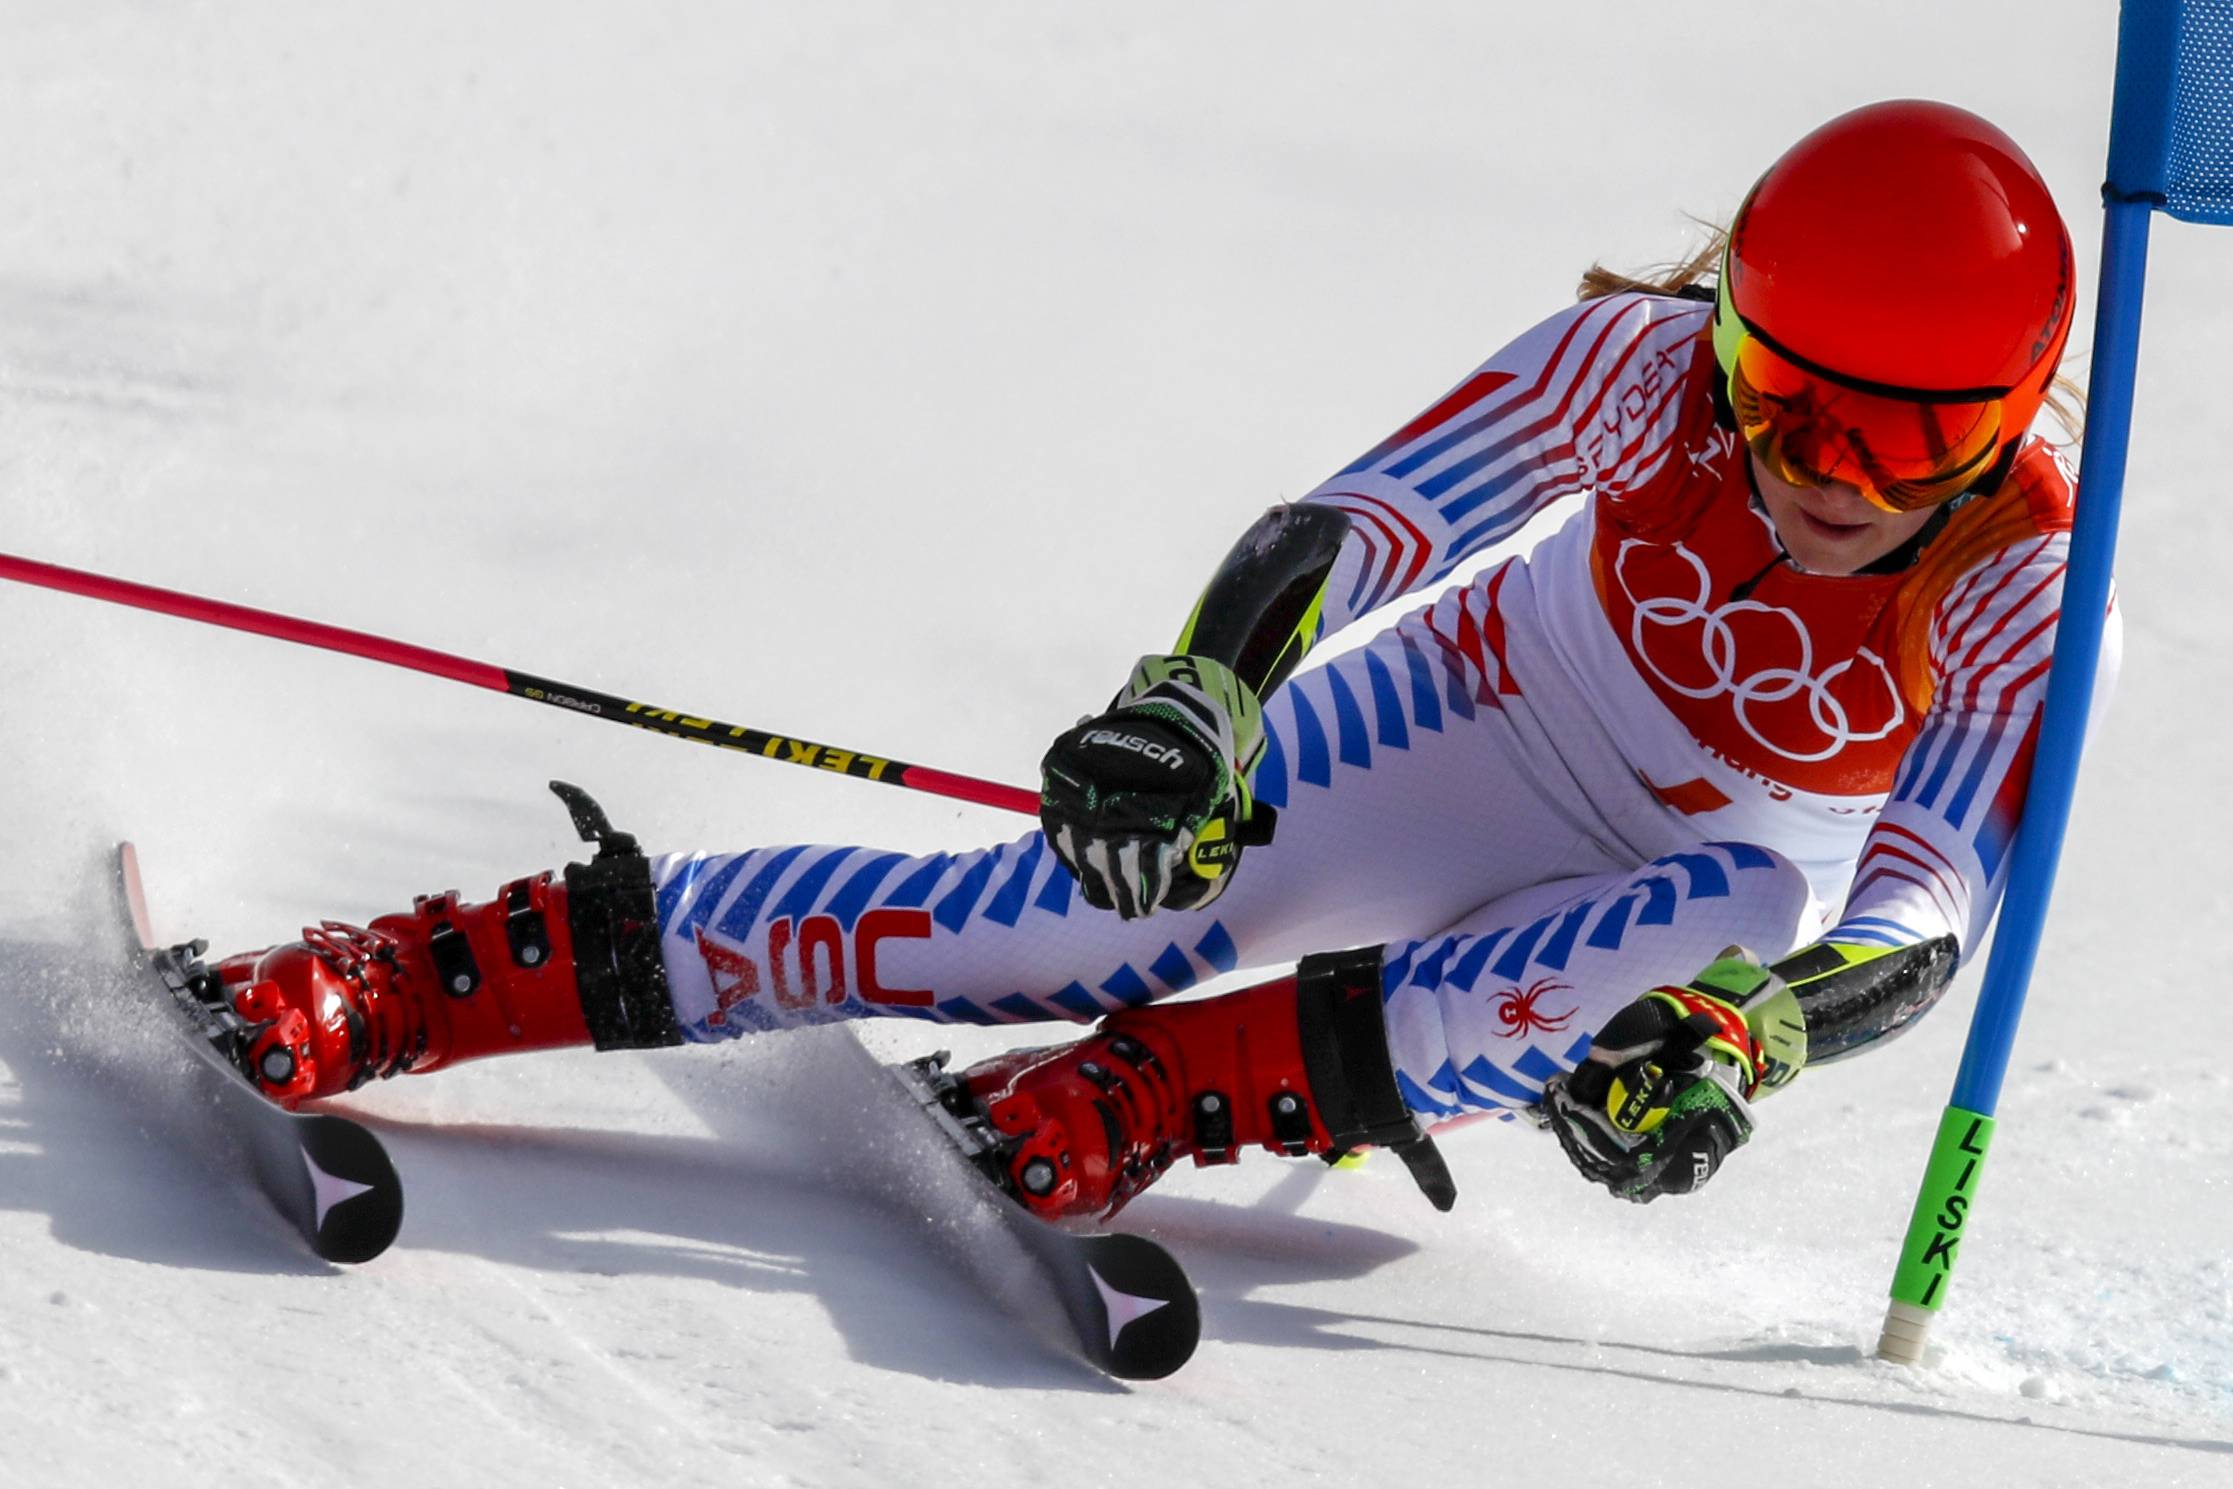 Mikaela Shiffrin, of the United States, attacks the gate during the second run of the Women's Giant Slalom at the 2018 Winter Olympics in Pyeongchang, South Korea.